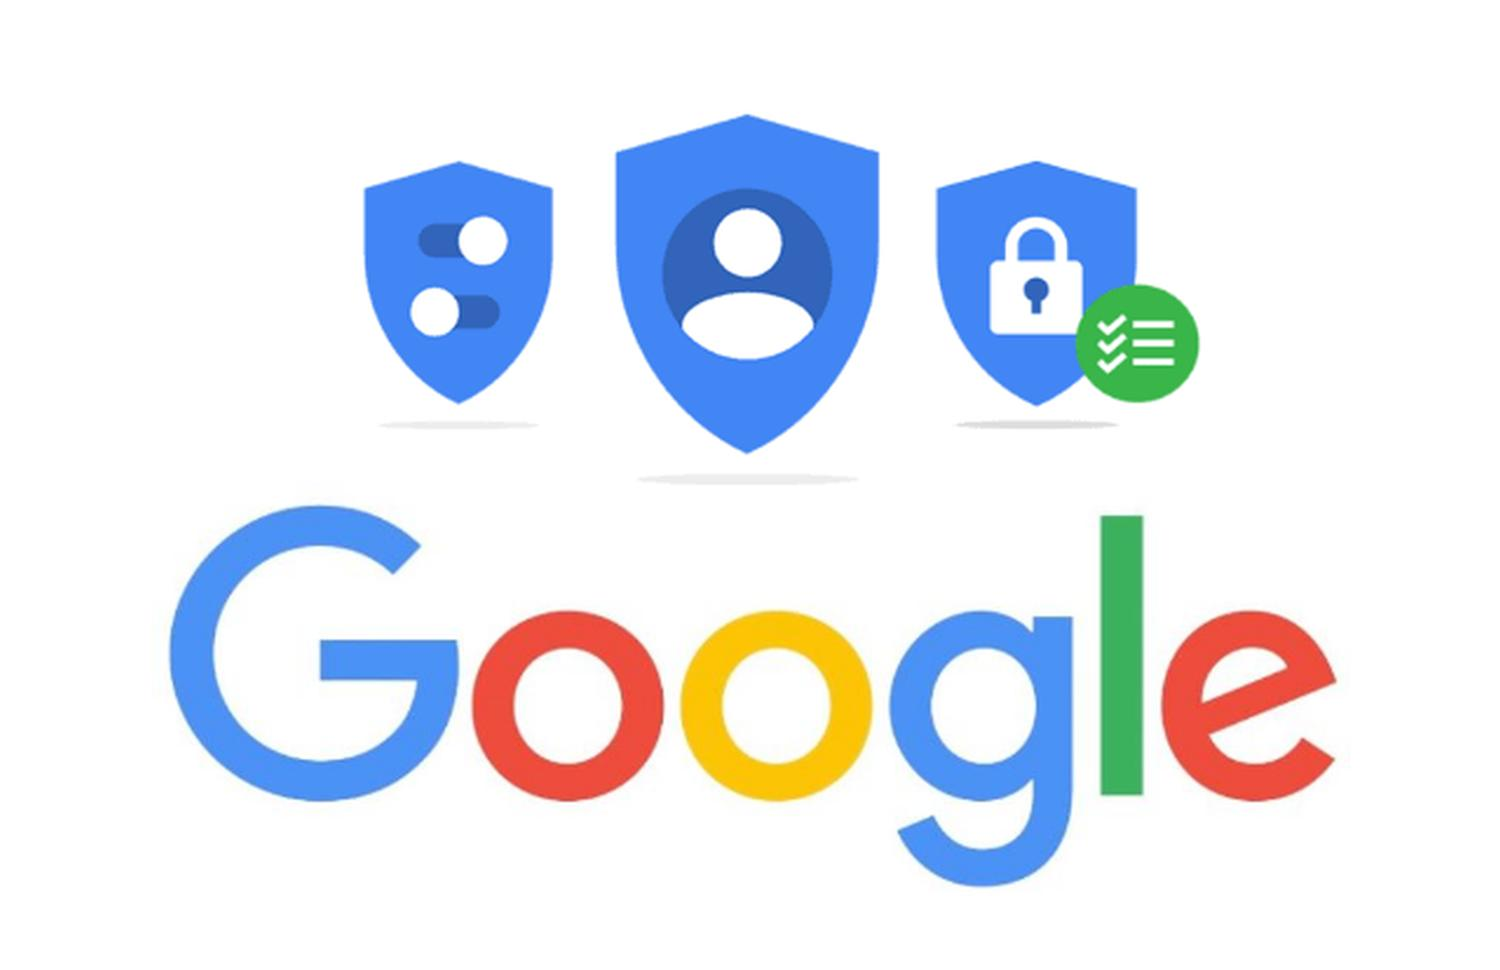 google security logo